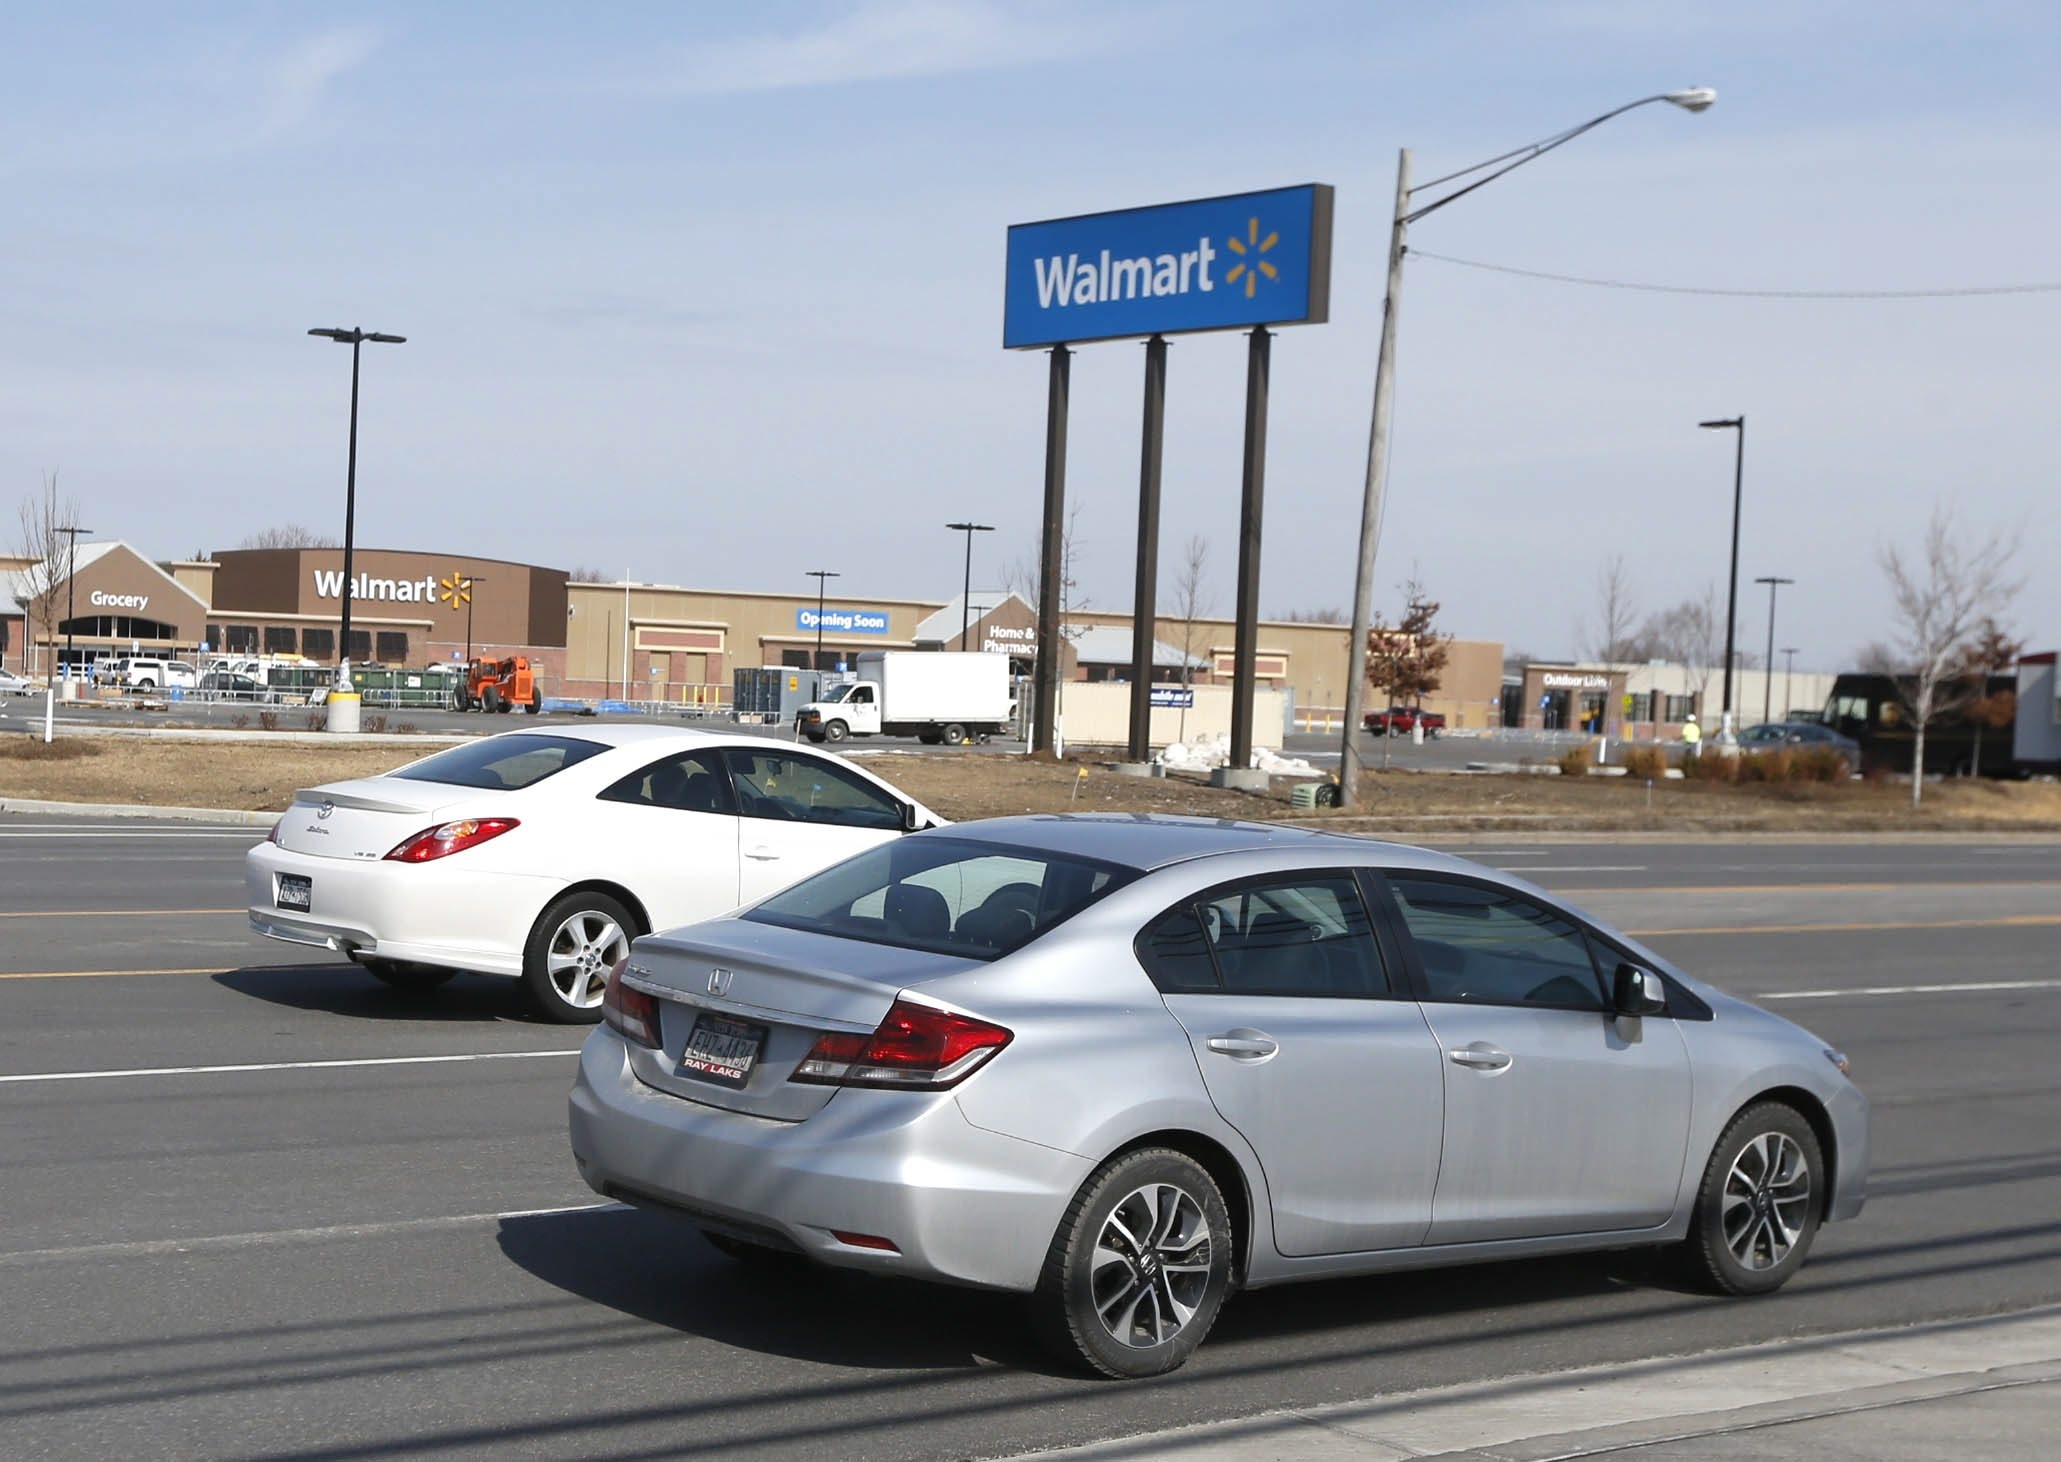 Metro Buses will not have direct access to the new Walmart on Walden in Cheektowaga. (Robert Kirkham/Buffalo News)